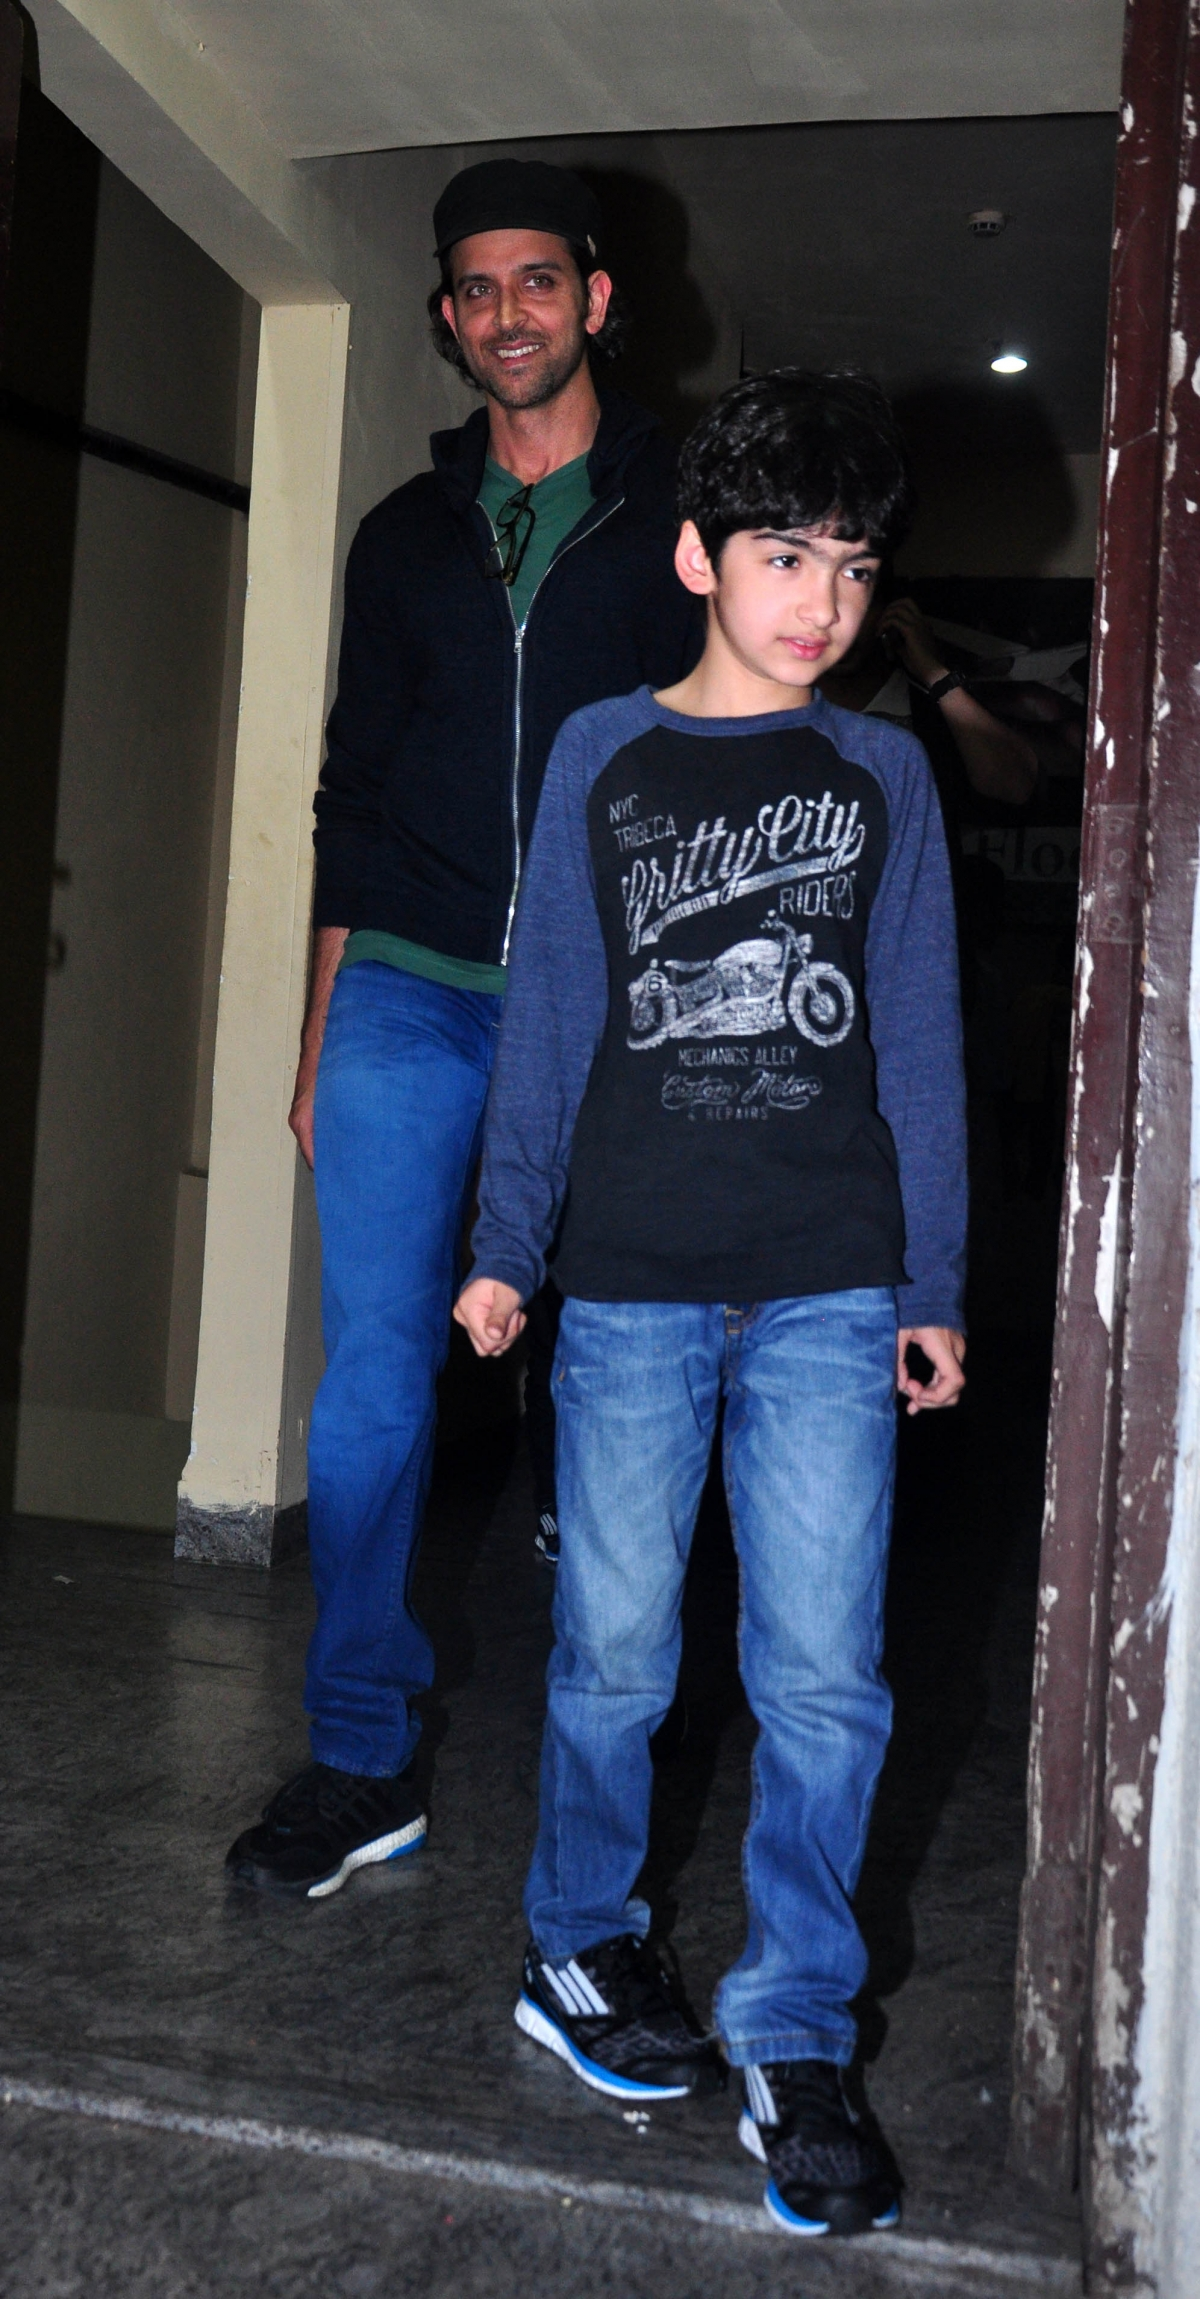 Hrithik Roshan And Zayed Khan Spotted With Their Kids At Mumbai Pvr